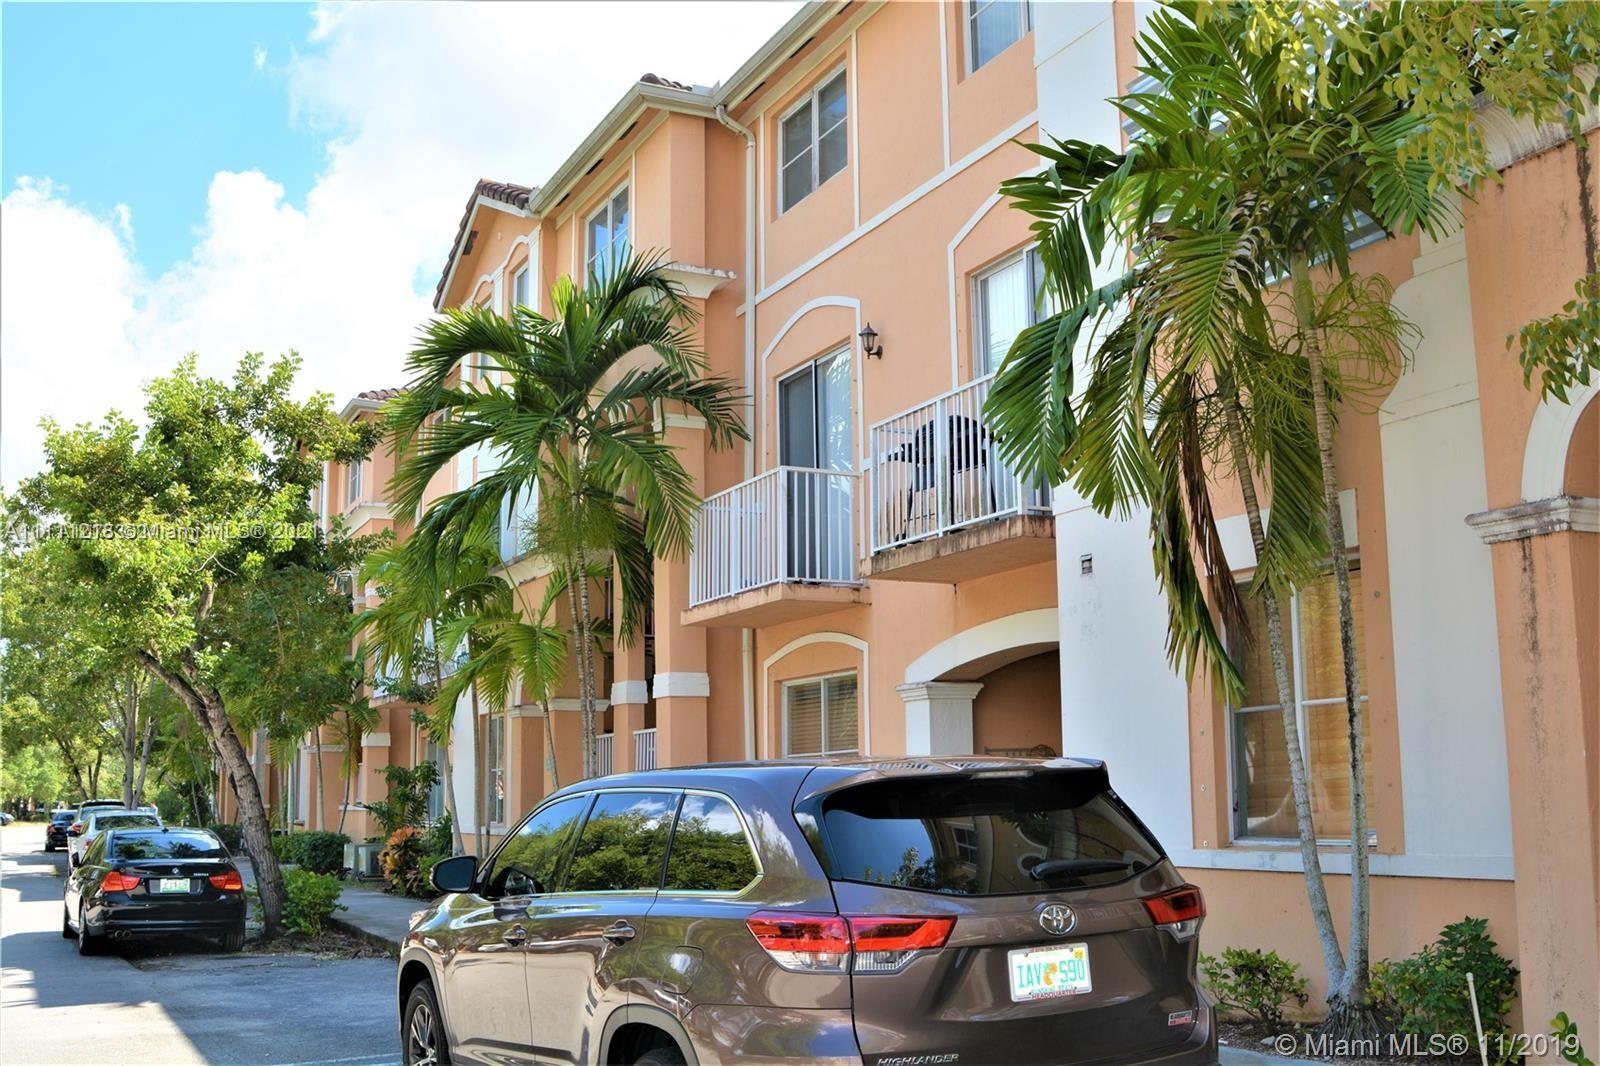 SHOMA HOMES AT COUNTRY CL Condo,For Rent,SHOMA HOMES AT COUNTRY CL Brickell,realty,broker,condos near me